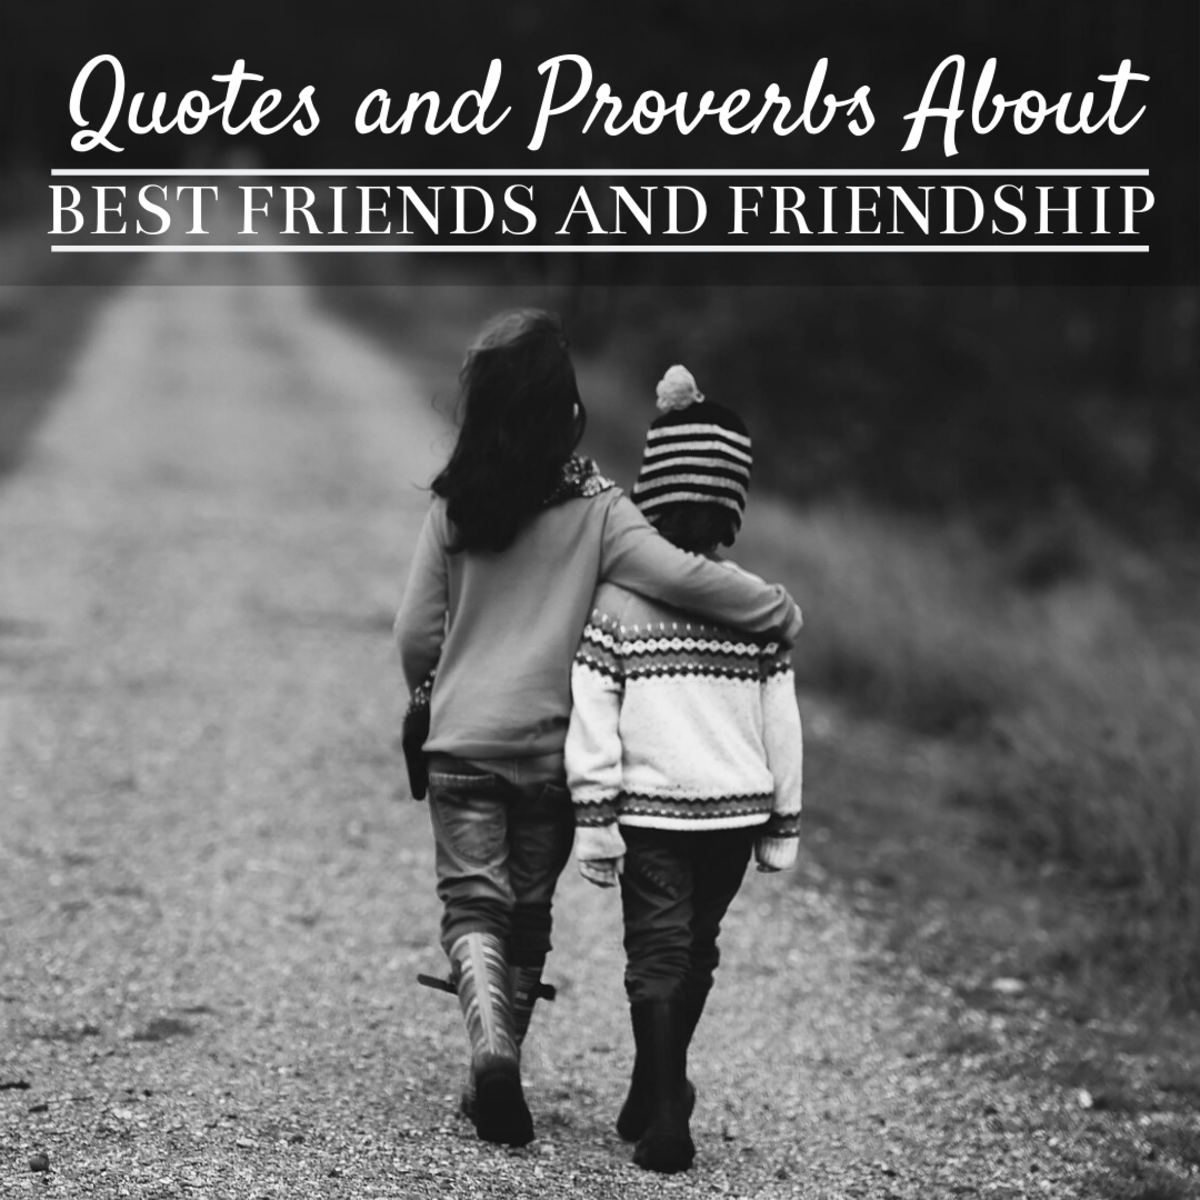 Our friends are among the most important people in our lives. The quotes on this page encapsulate the importance of  the bond that exists between close friends.